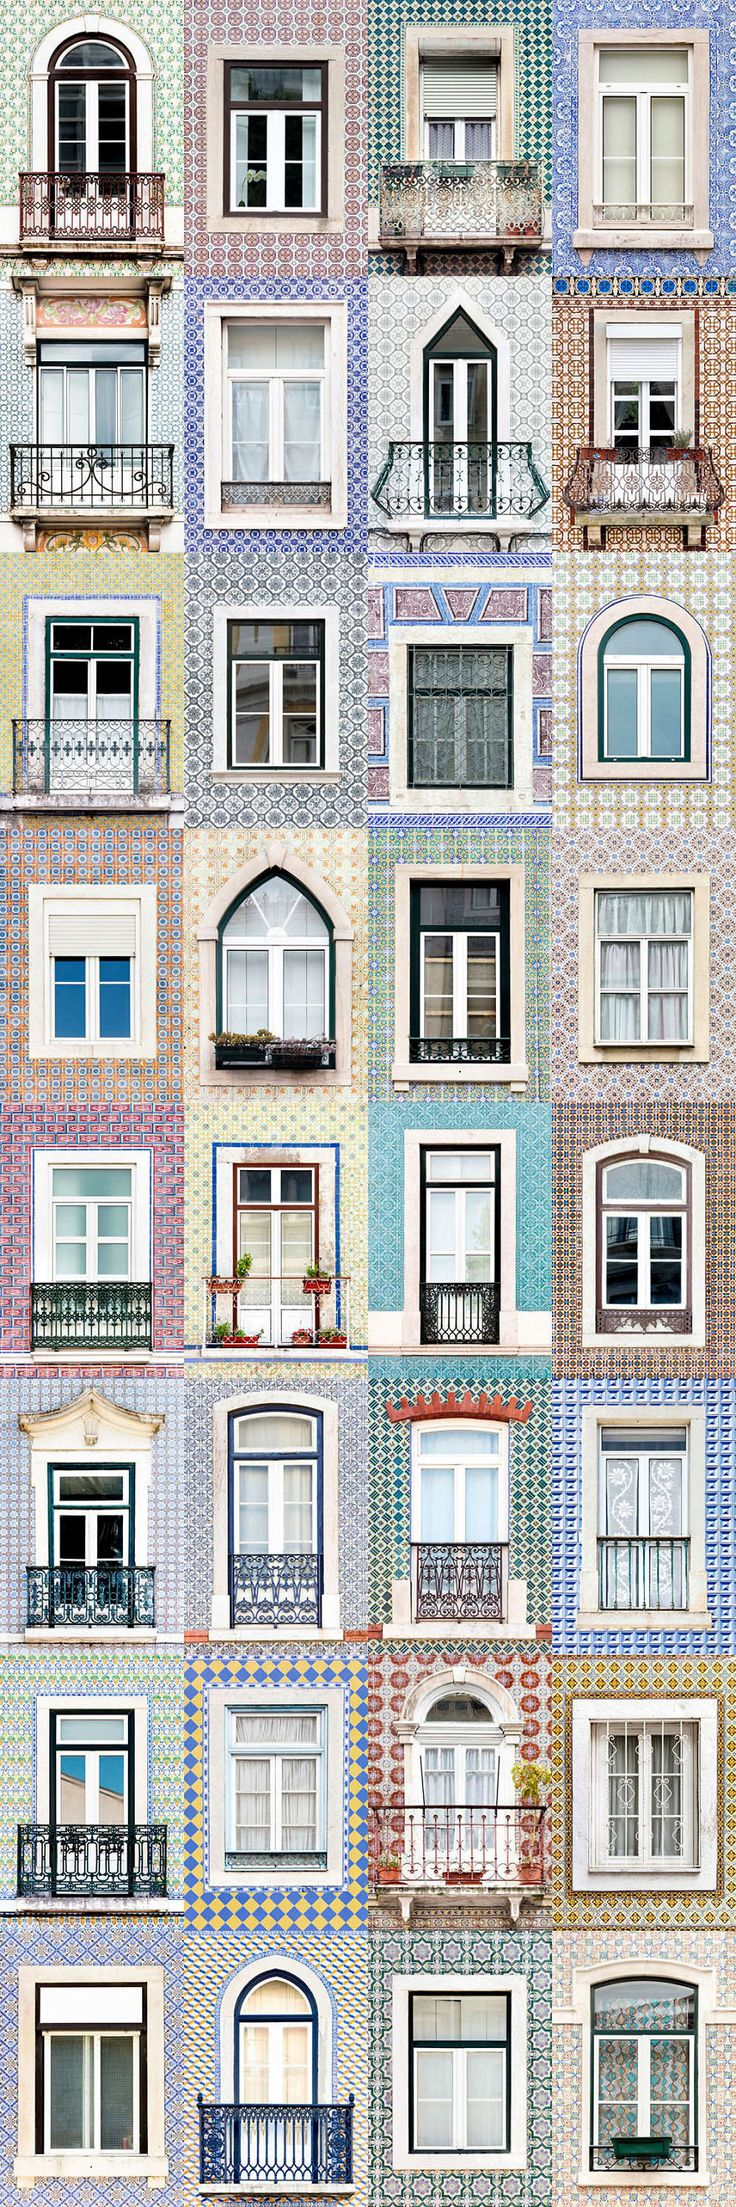 I Traveled All Over #Portugal To Photograph Windows, And Captured More Than 3200 Of Them - via BoredPanda 23-10-2017 | If you are planning a trip to Portugal, you can see which are the most beautiful cities to visit or what kind of architecture you like the most. Photo: Lisbon